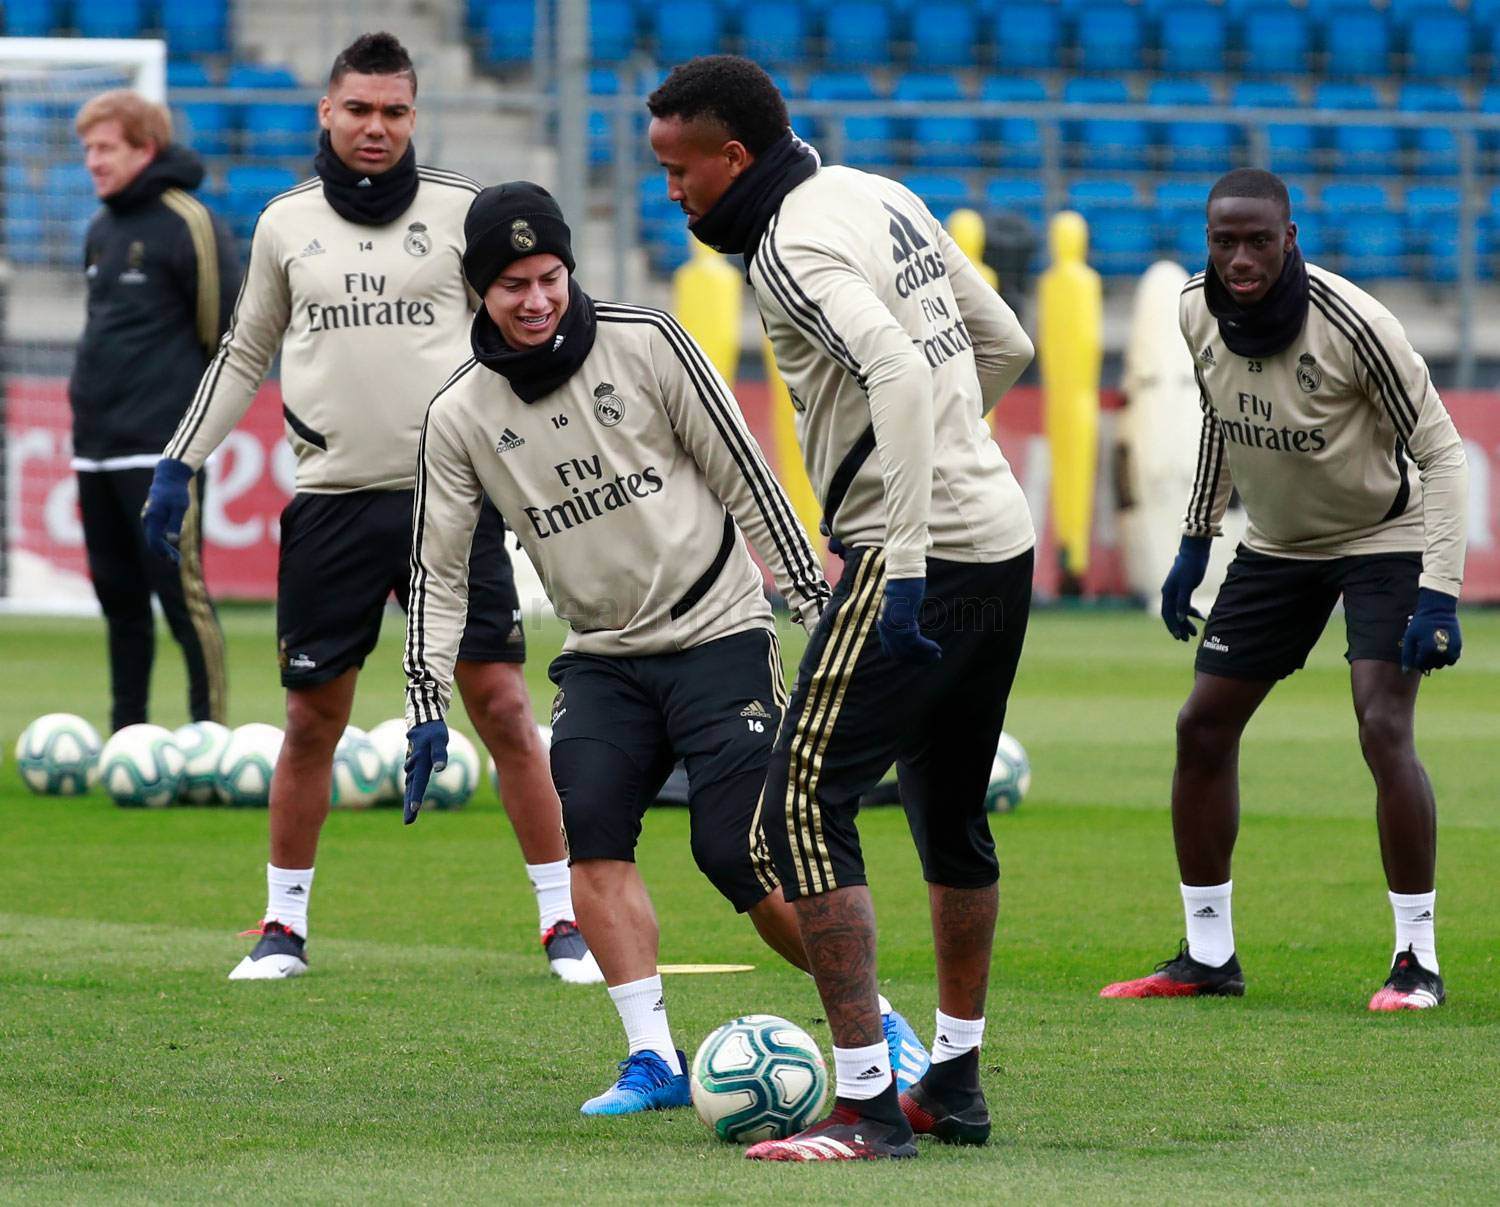 Real Madrid - Entrenamiento del Real Madrid  - 29-02-2020